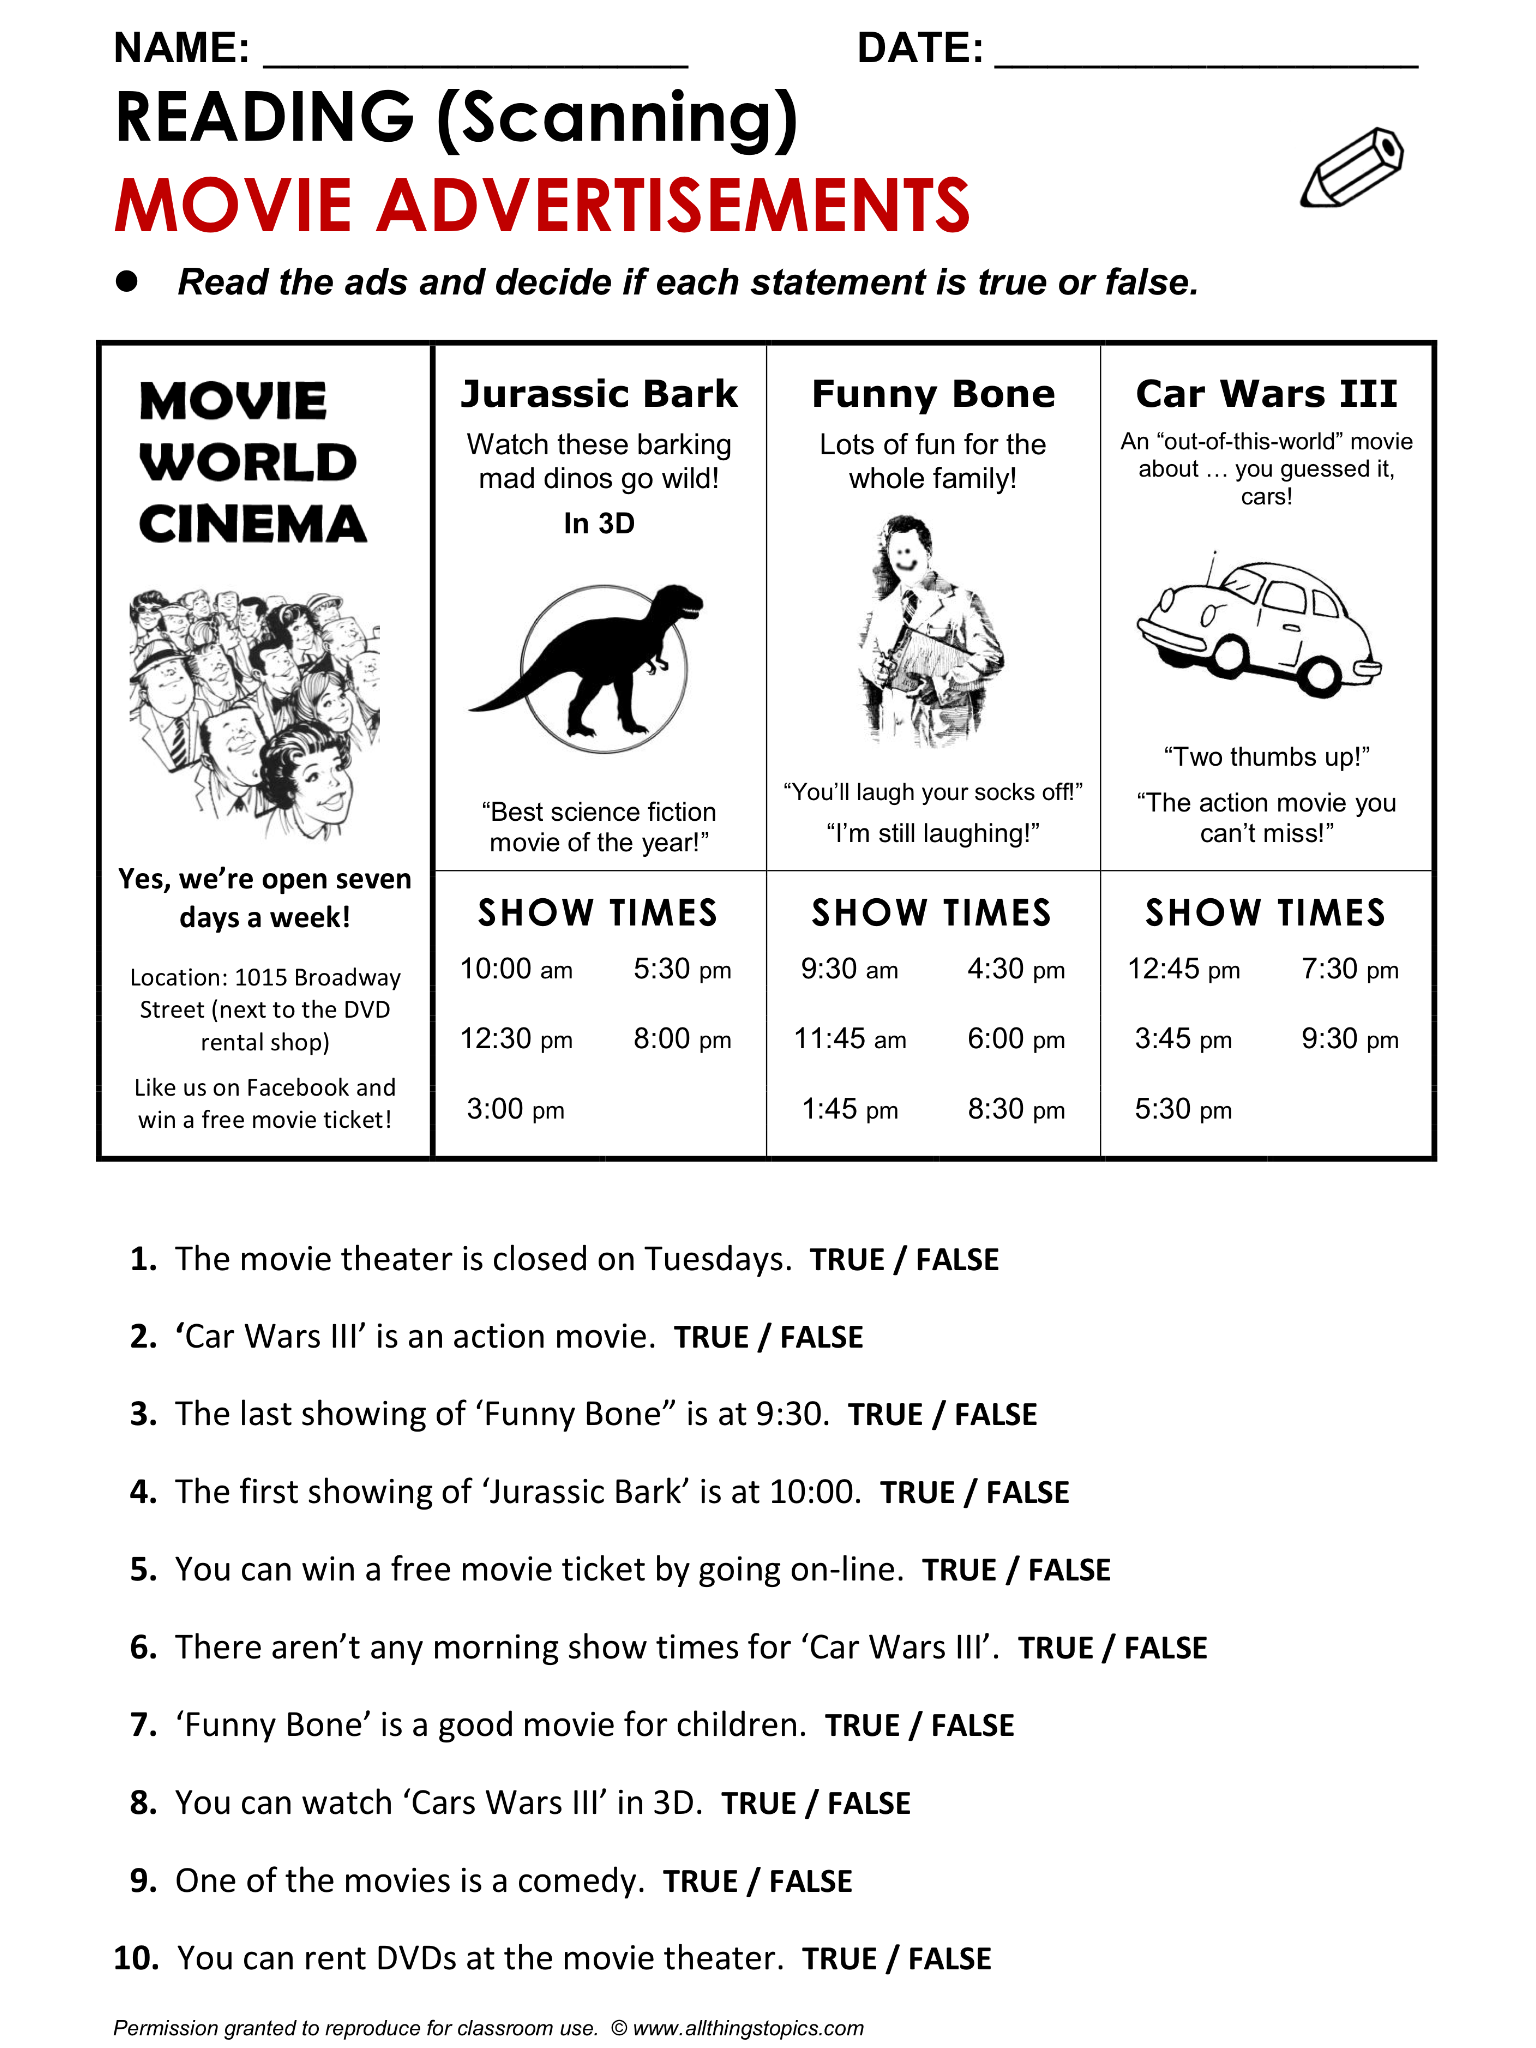 Reading Scanning Practice Movies Http Www Allthingstopics Com Movies And Tele English Teaching Materials English Reading Reading Comprehension Worksheets [ 2048 x 1536 Pixel ]